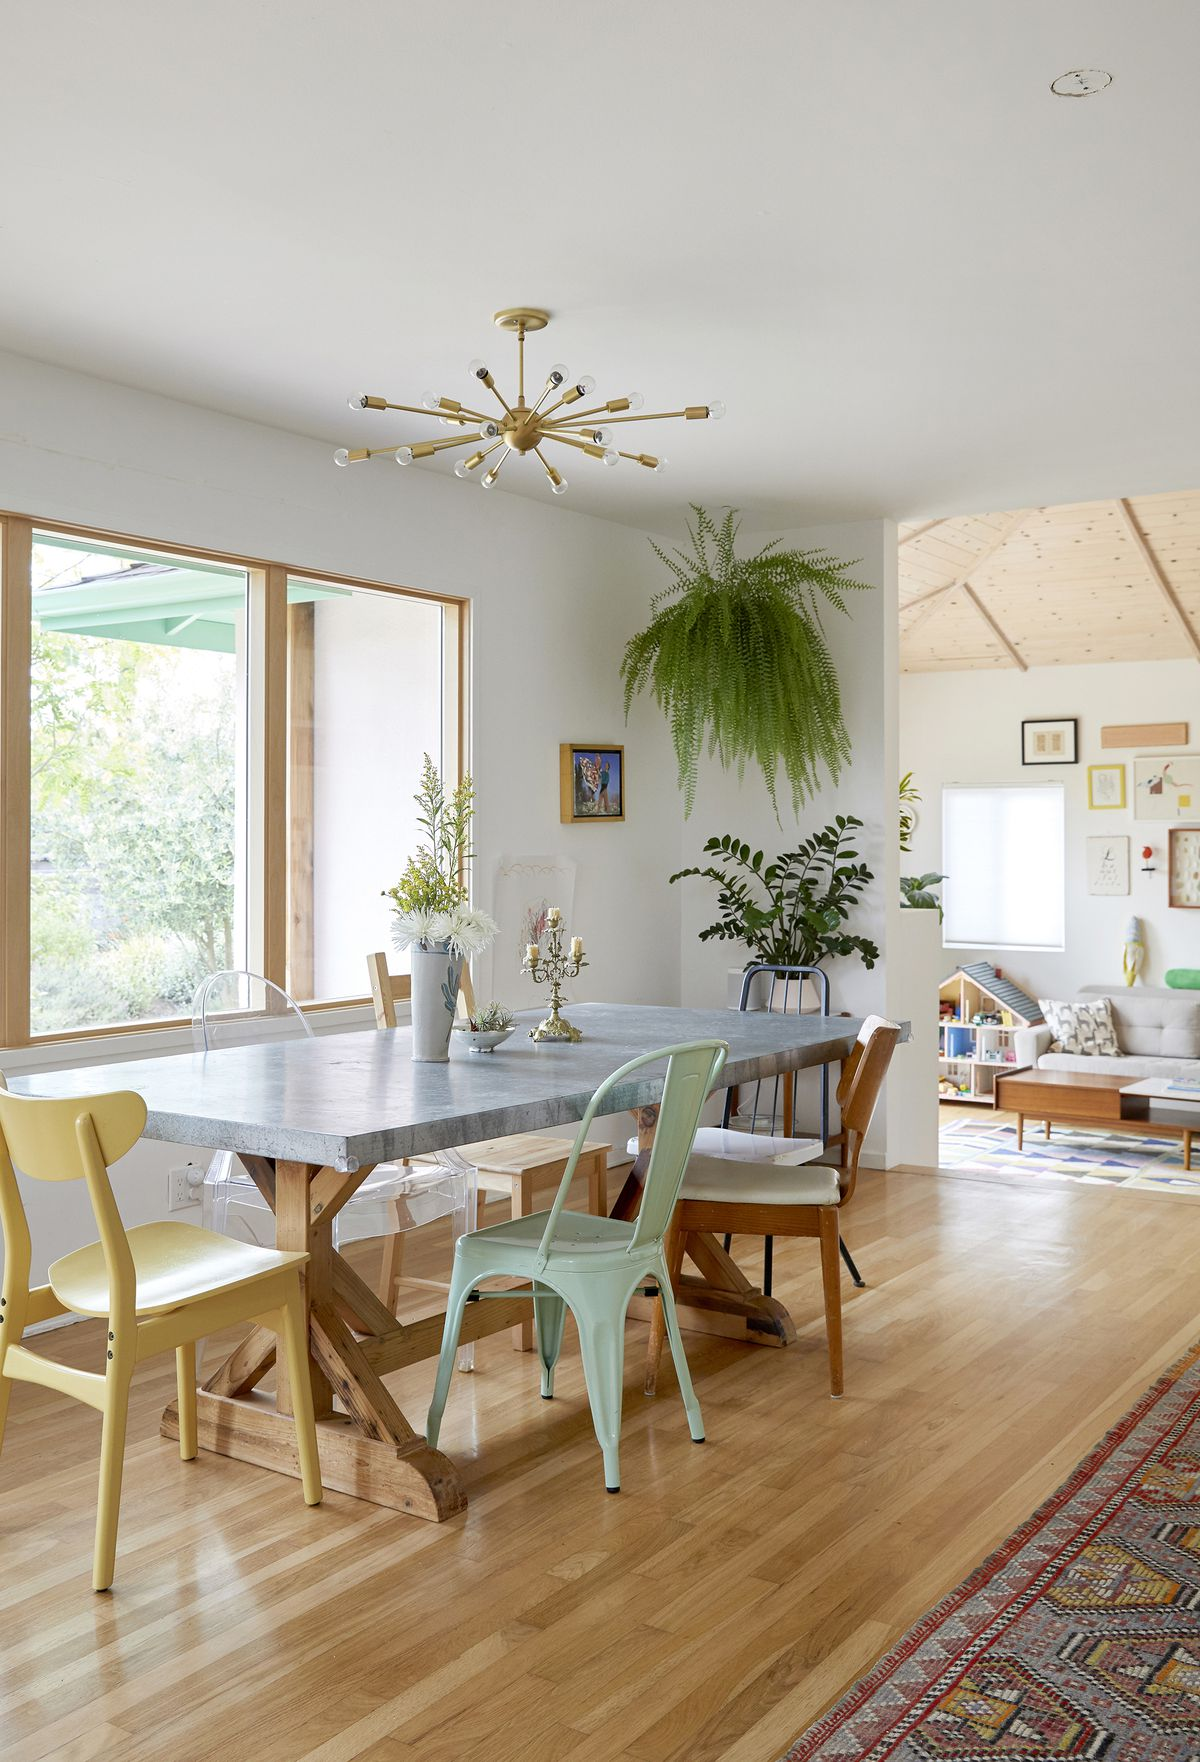 A dining room with a large table and a variety of chairs. The floor is exposed wood. There is a light fixture and a hanging houseplant. A large window faces the table and overlooks the outside.